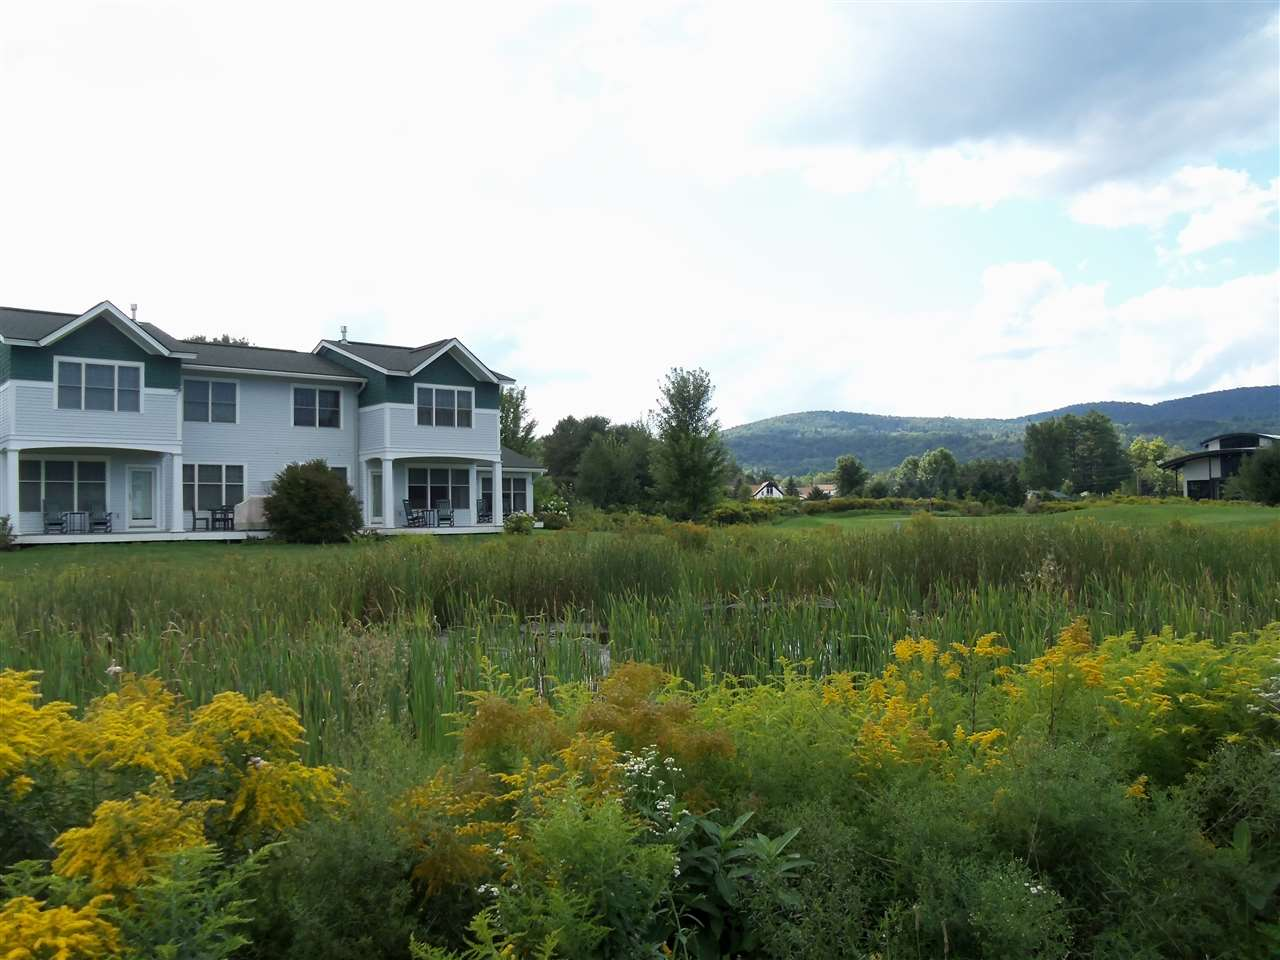 1746 Mountain Road 690/91, Stowe, VT 05672